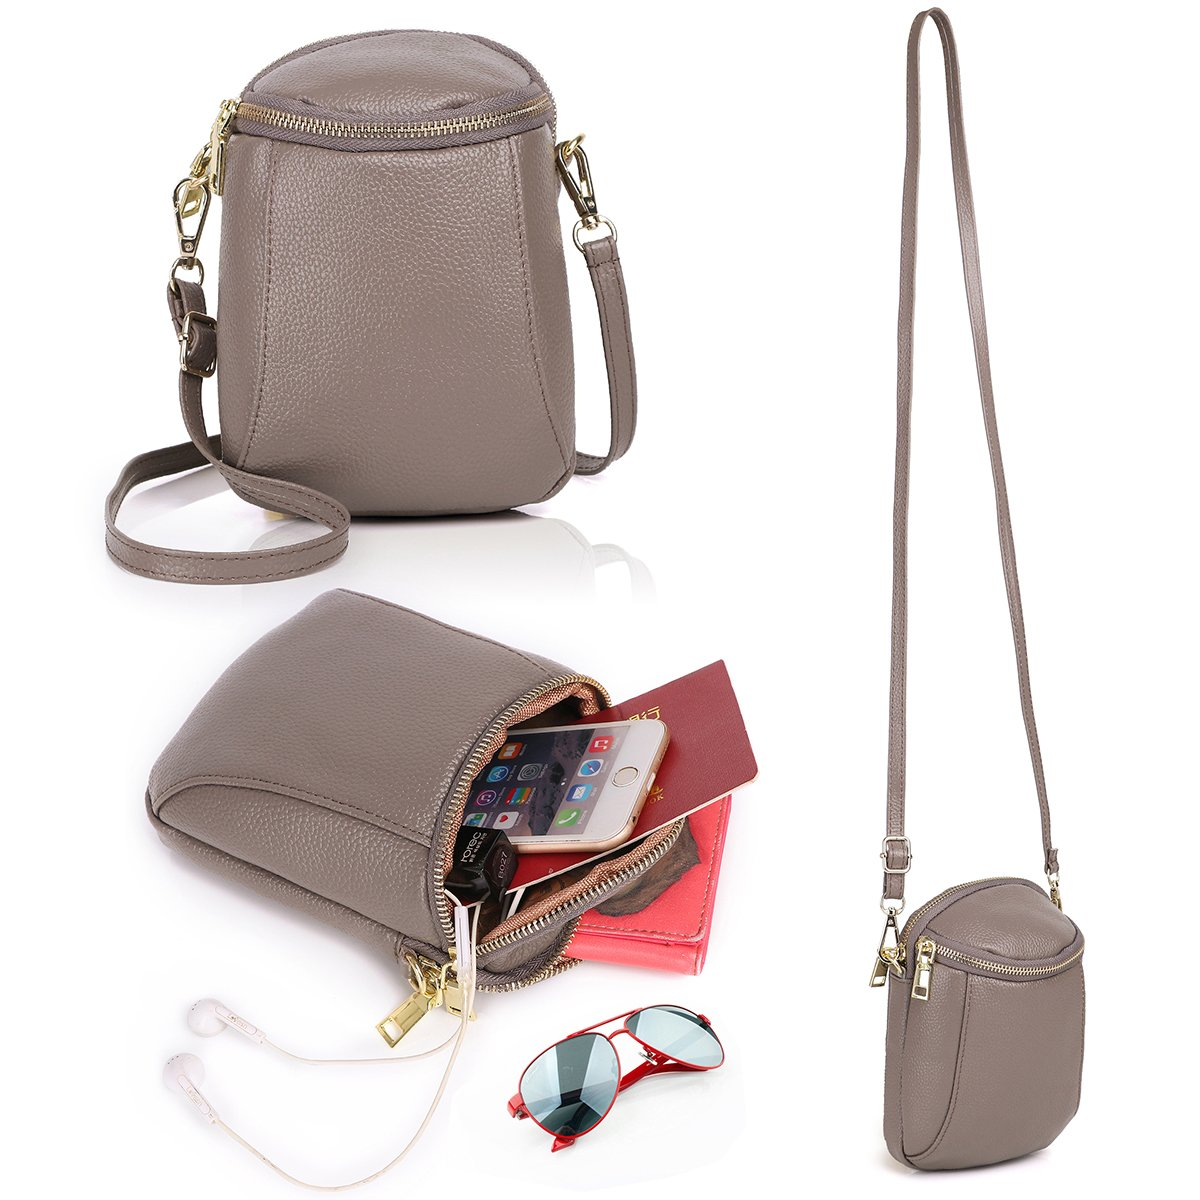 Zg Girls Women 100% Real Leather Small Cute Crossbody Cell Phone Purse Wallet Bag